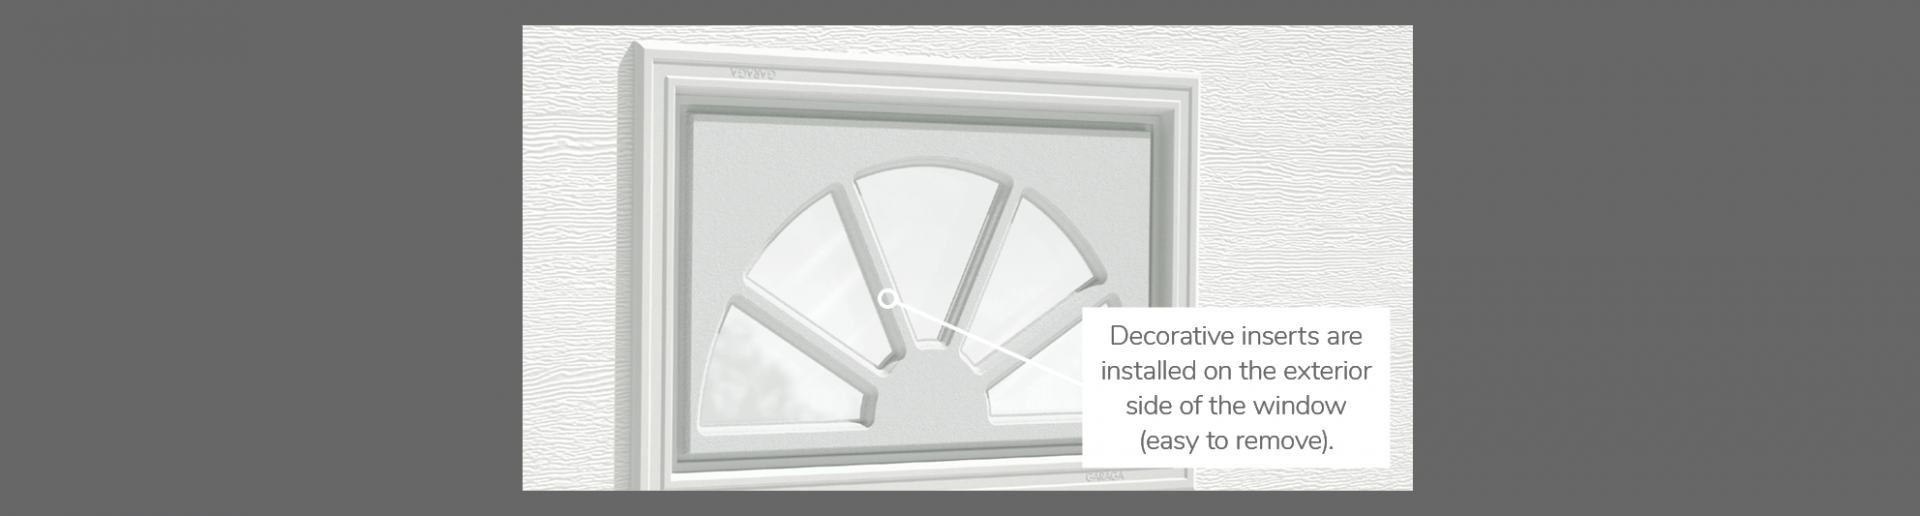 Sherwood Decorative Insert, 21' x 13', available for door R-16